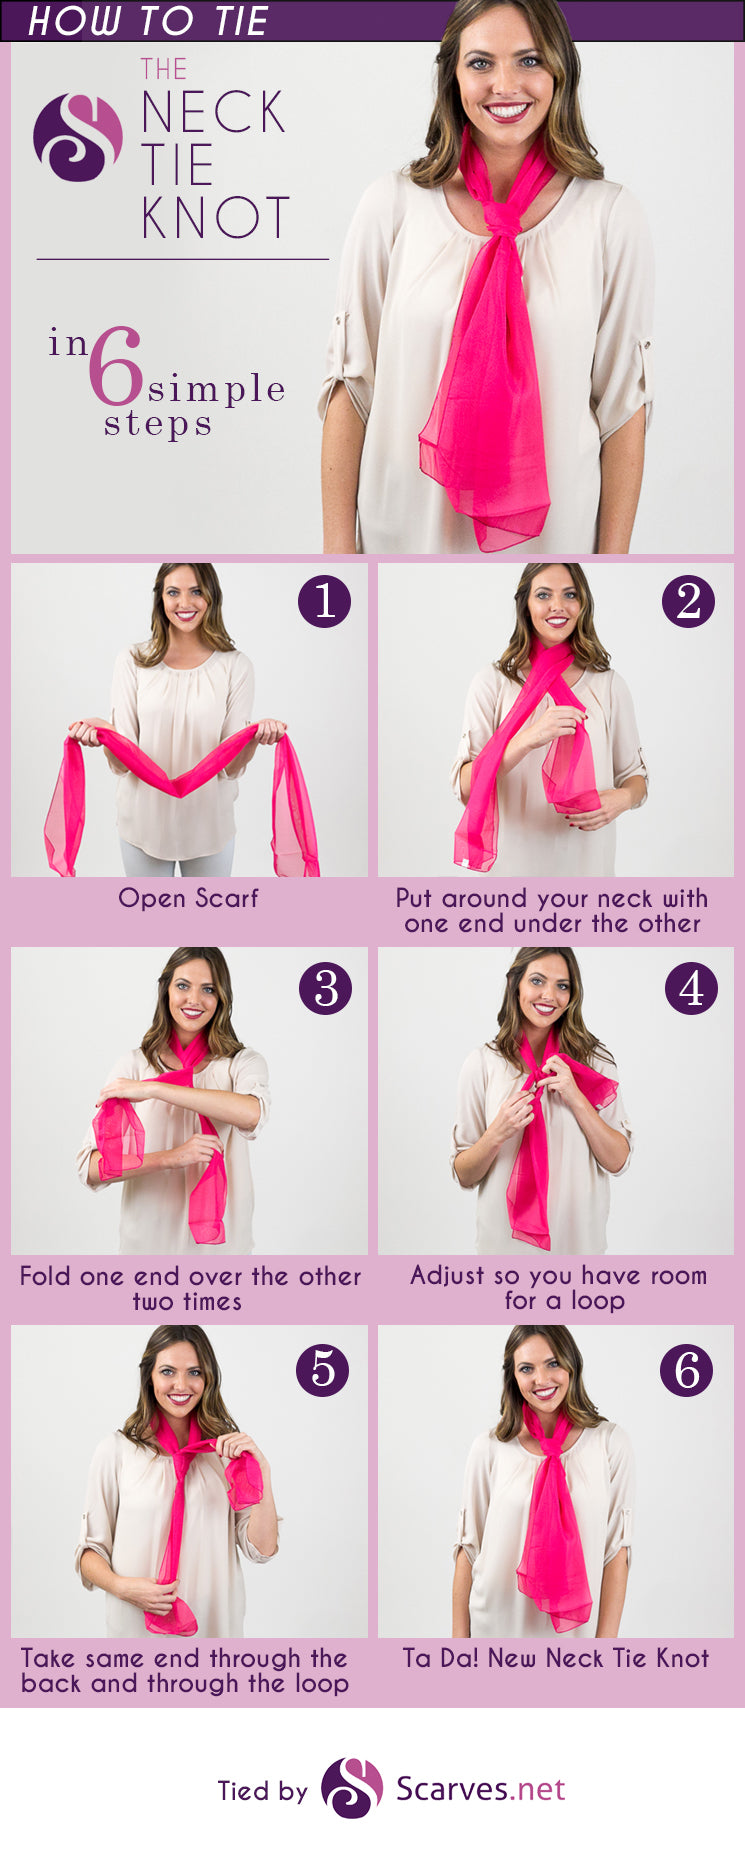 Neck Tie Knot in 6 simple steps